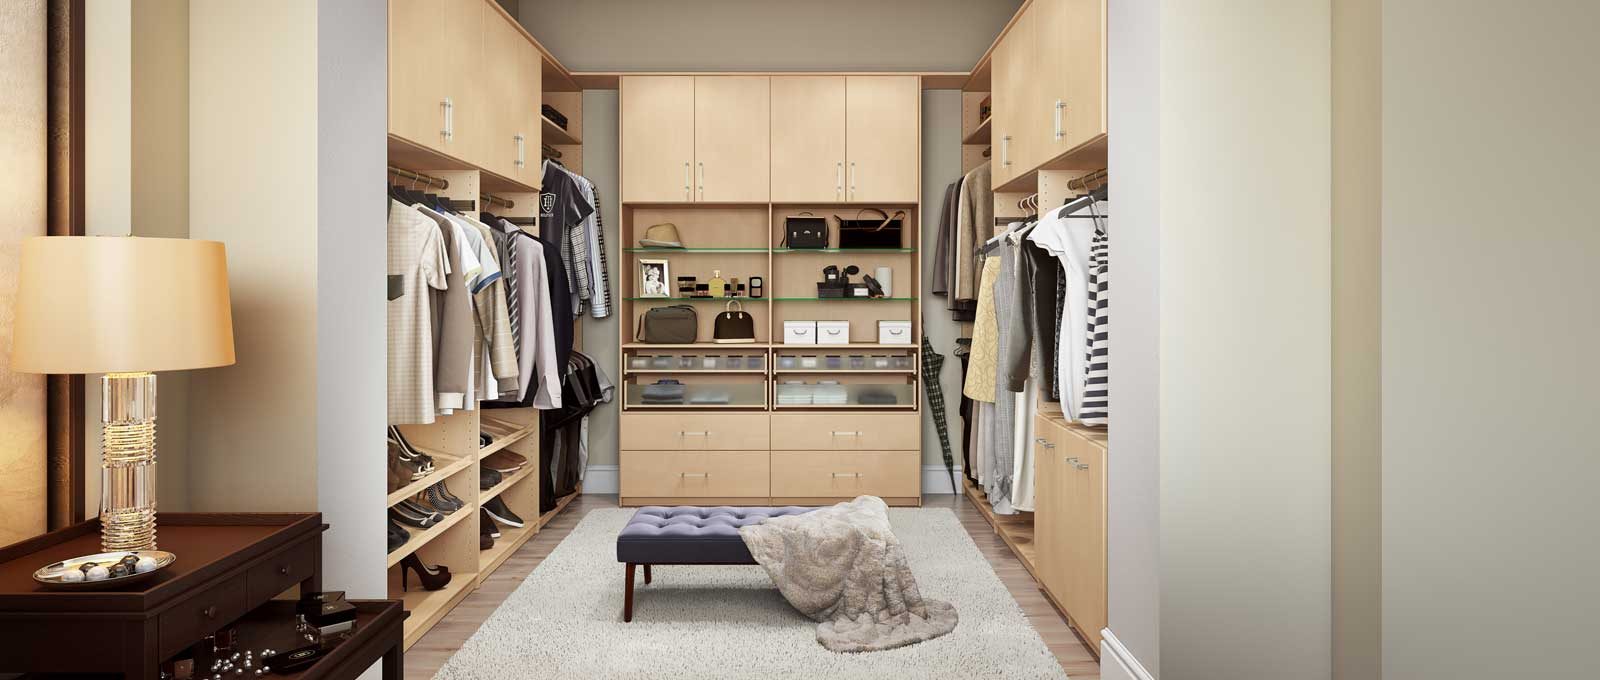 Charmant Closet World